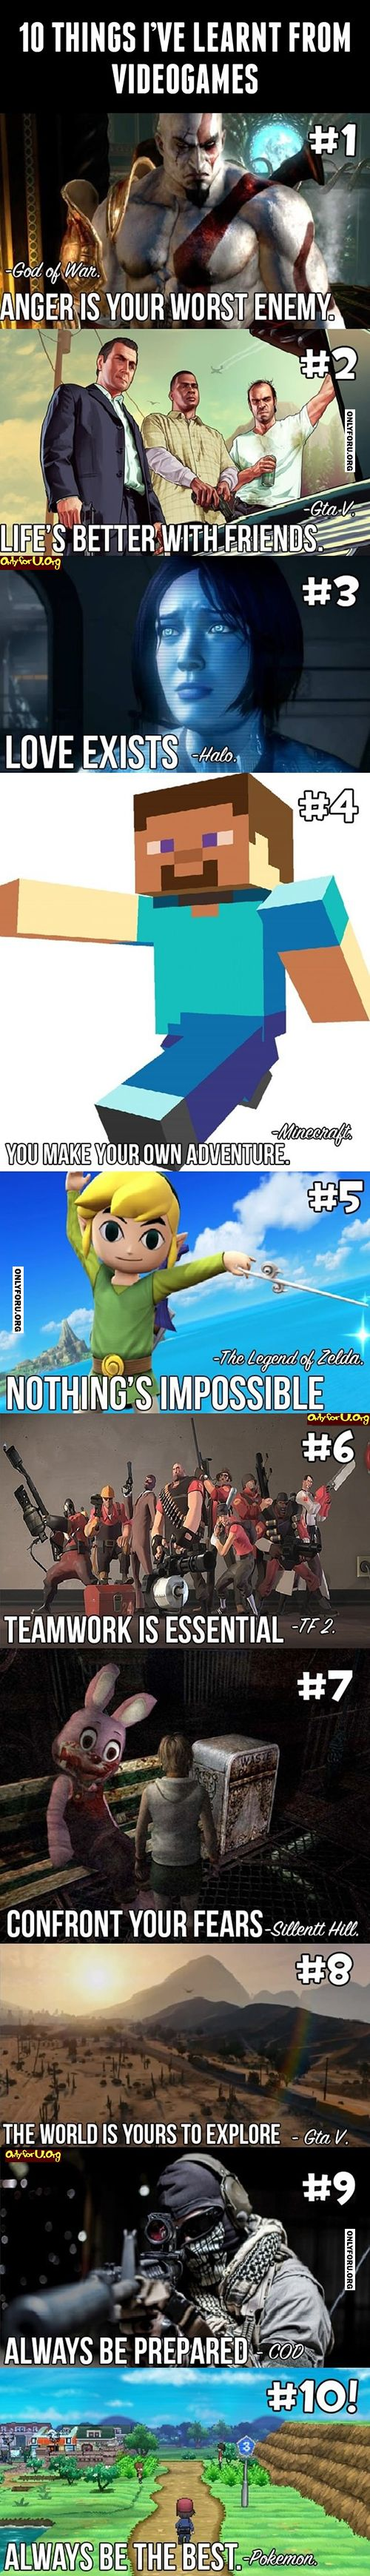 #videogames #ten #things #learned #lesson #meme #funny